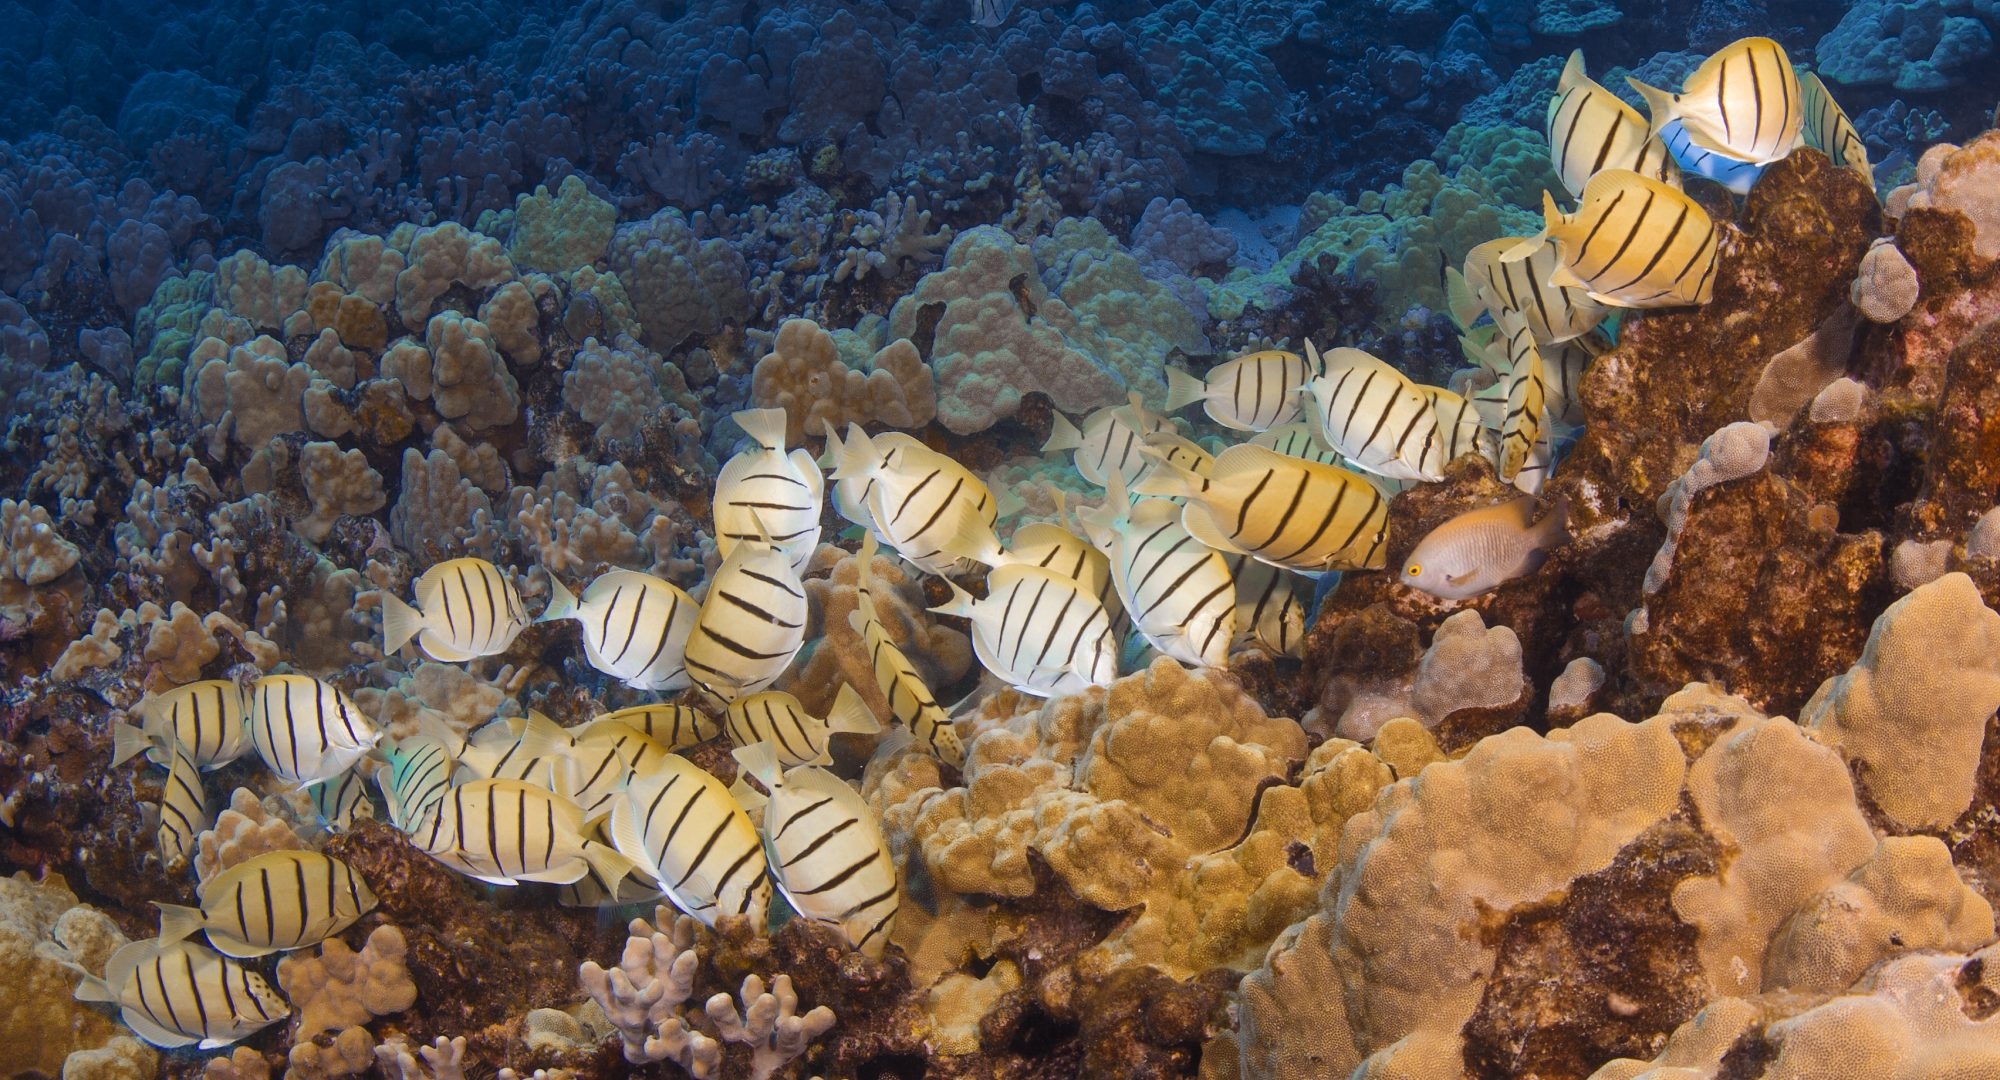 School of Convict Tang on a Hawaiian Reef